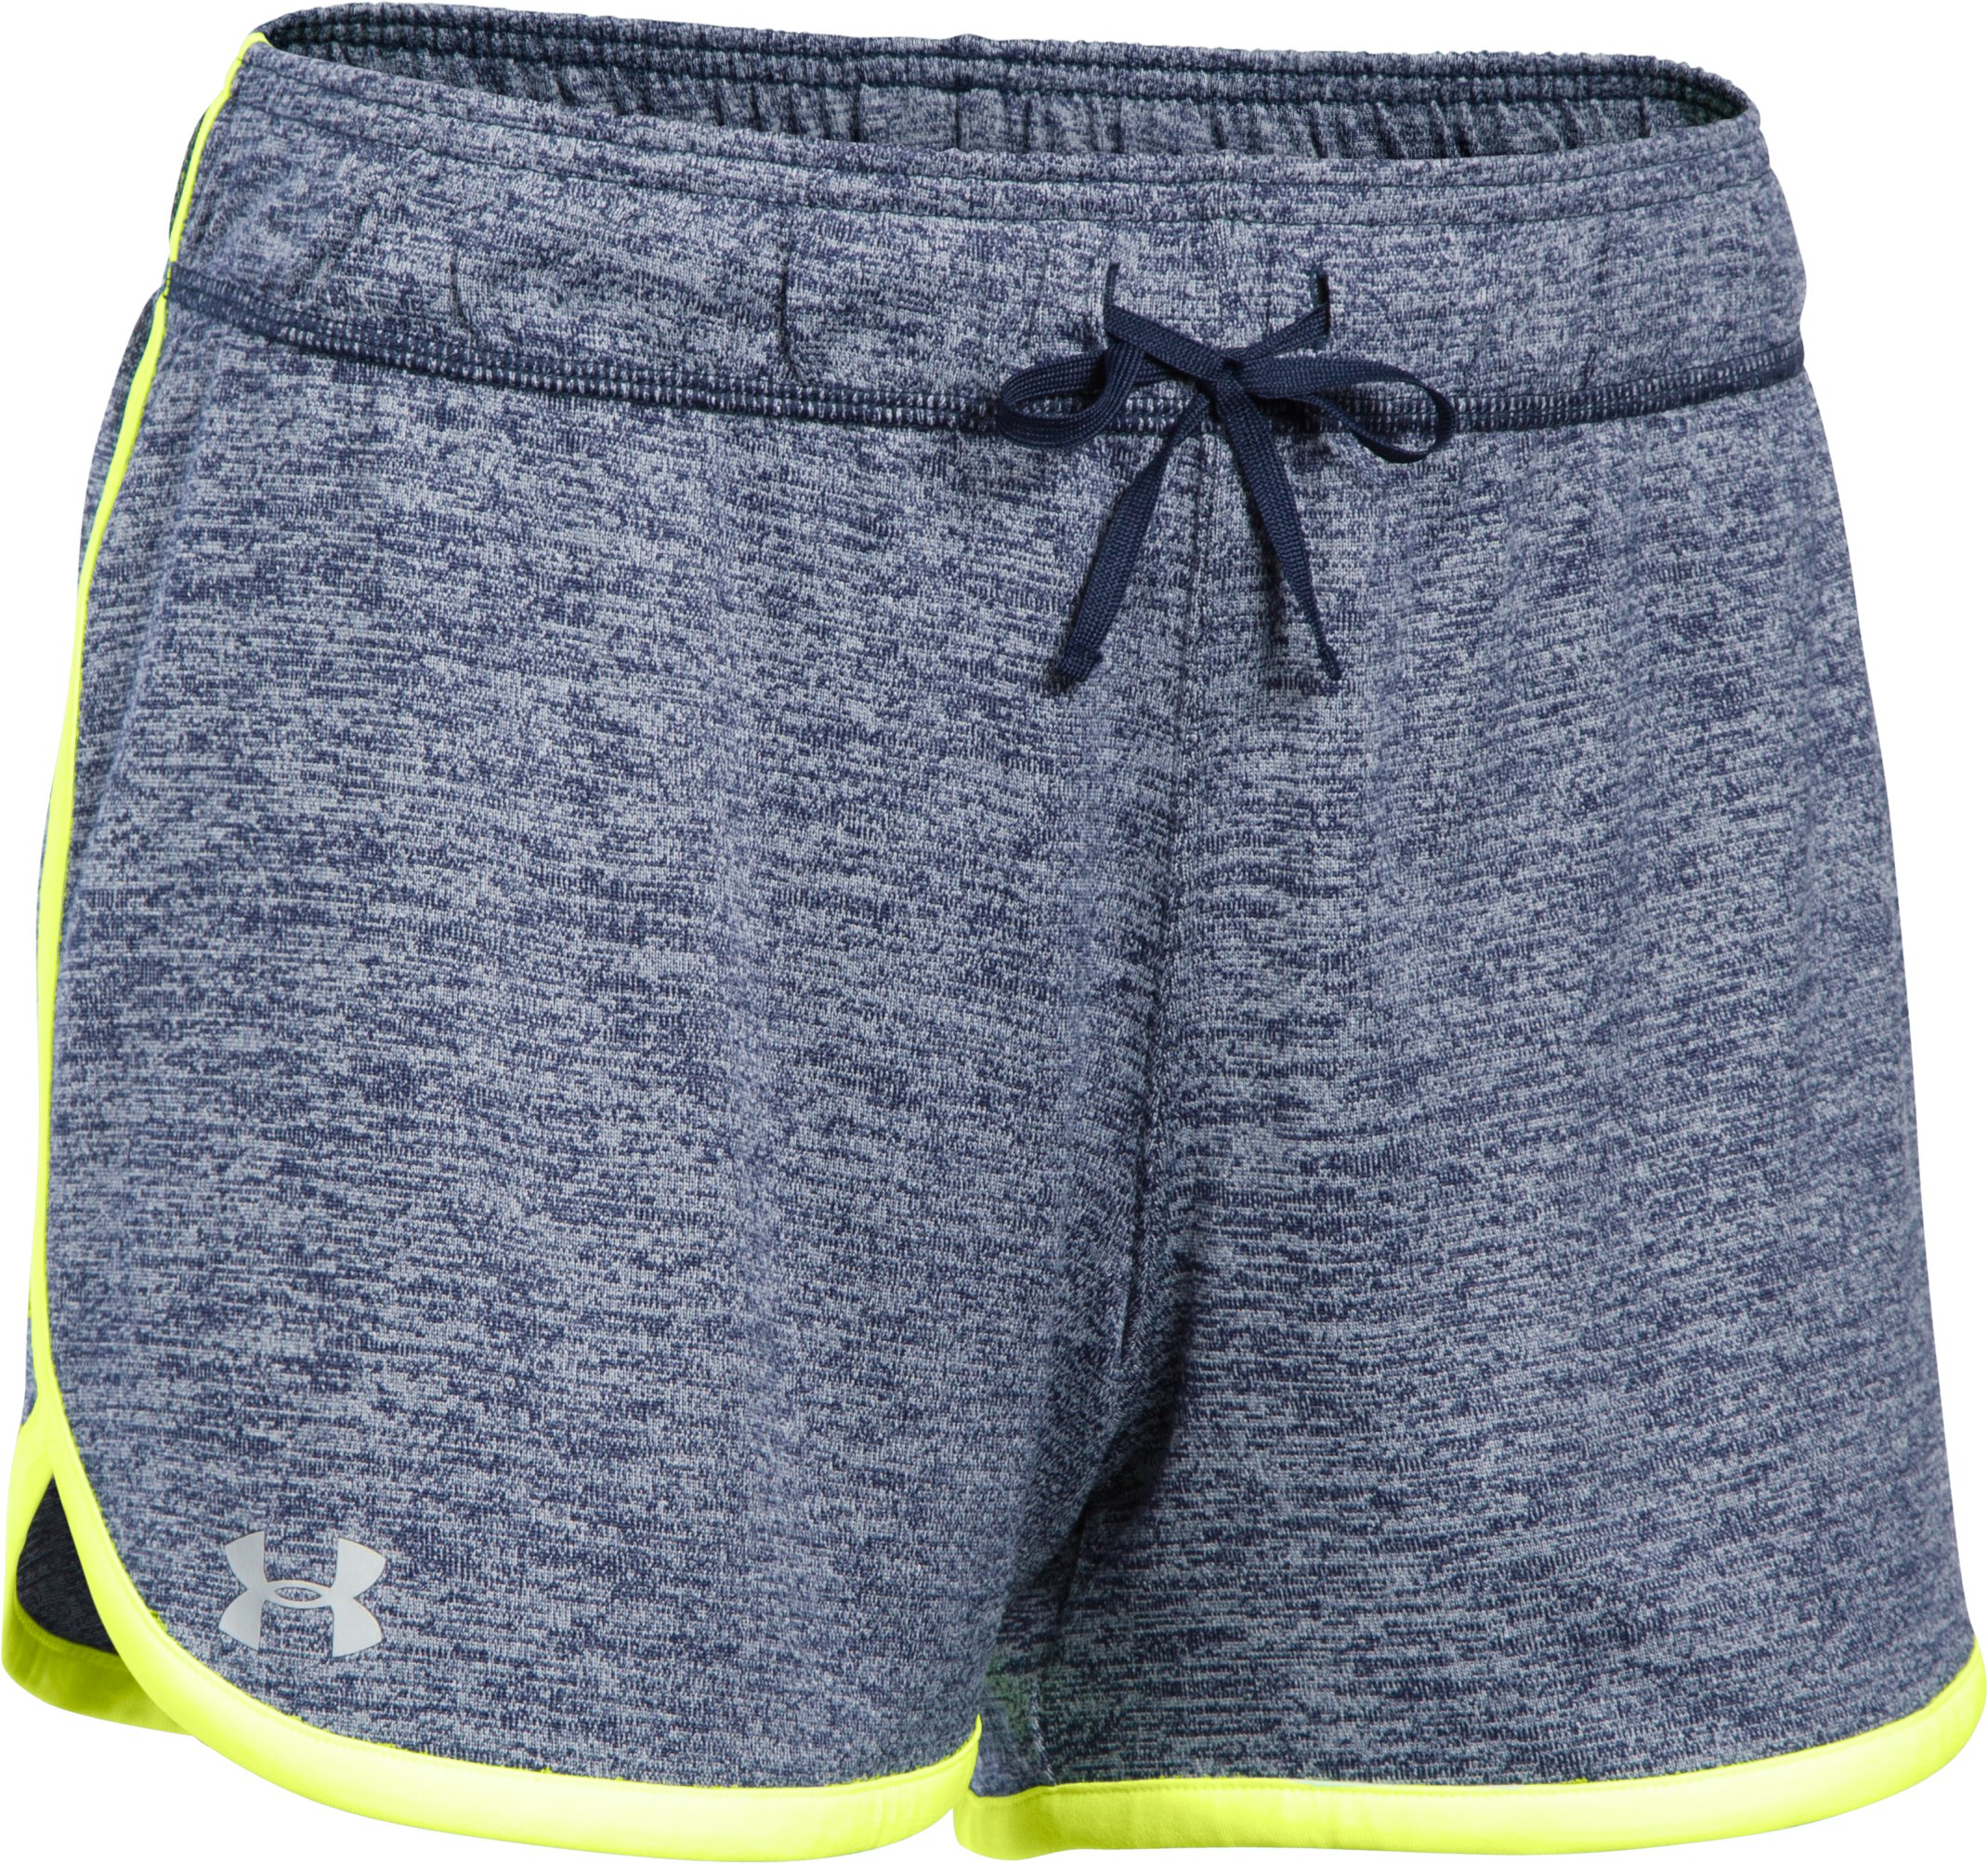 Women's UA Tech™ Shorts - Twist, Midnight Navy, undefined